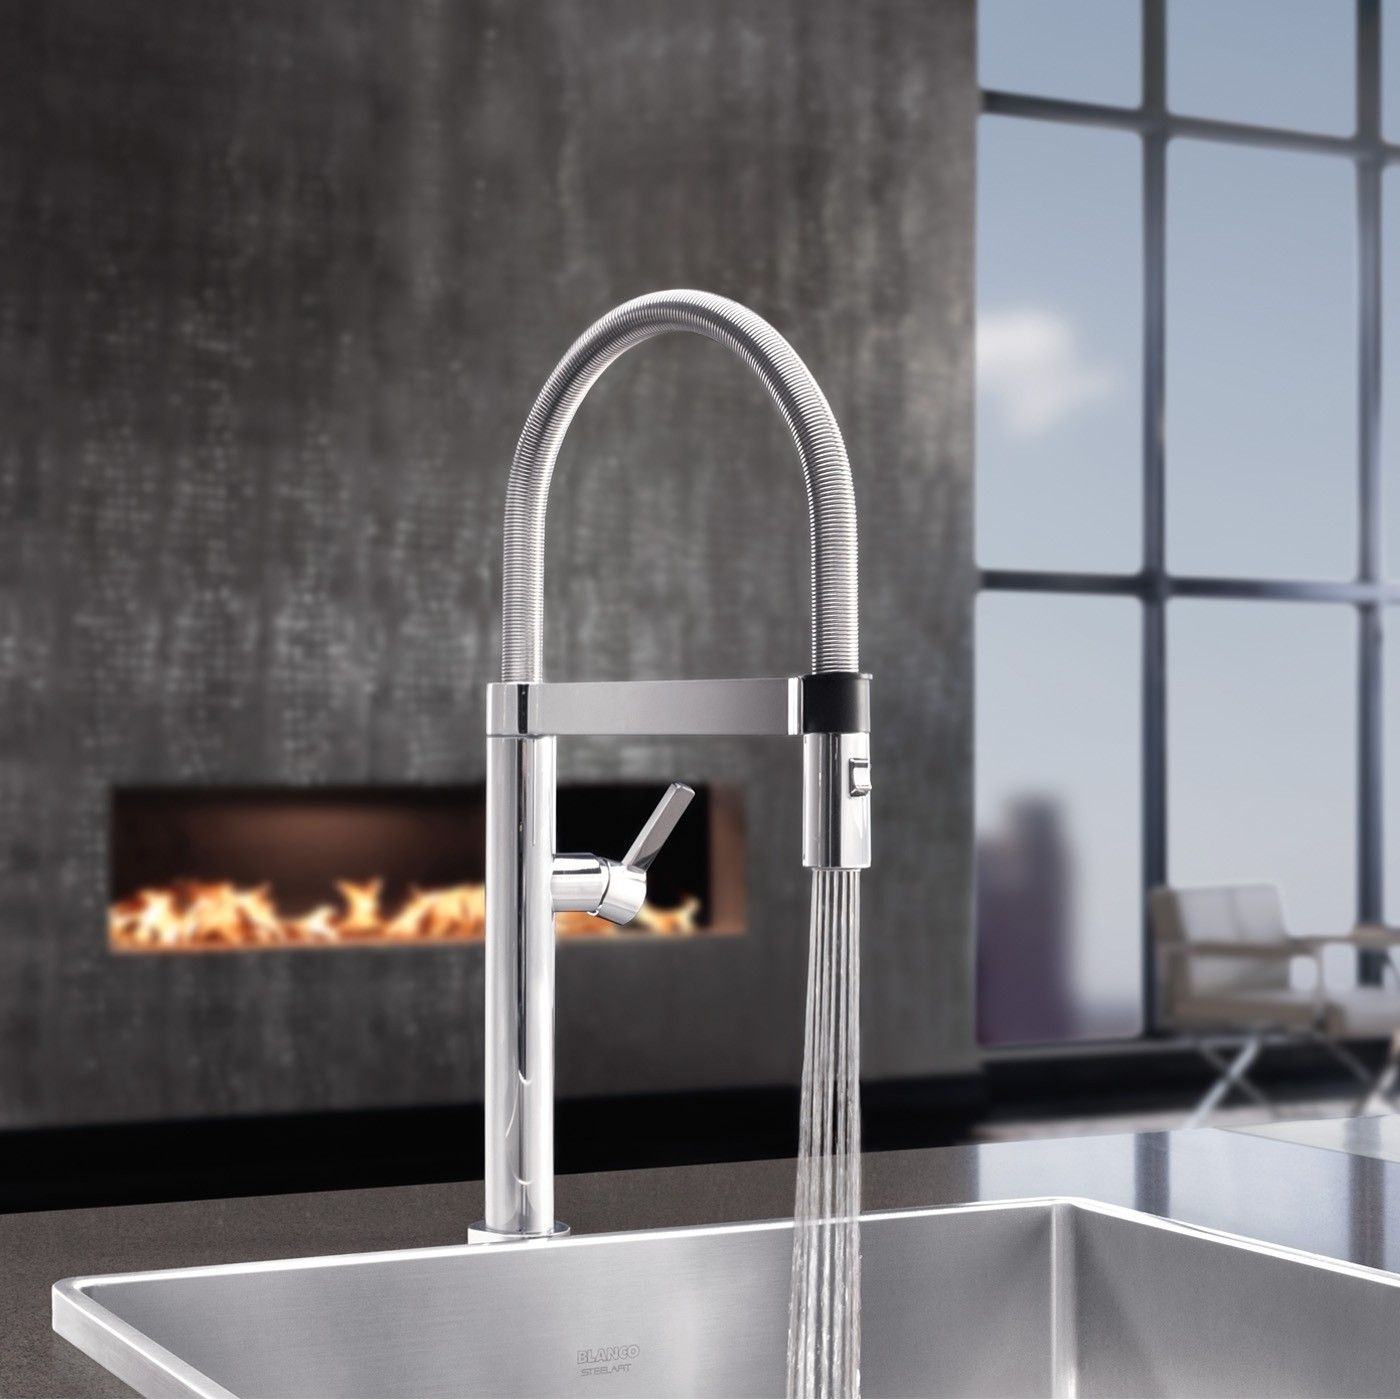 Bon The Culina Mini Pull Down Kitchen Faucet Offers Refined Utility For Modern  Kitchens. Http://www.ybath.com/blanco Culina Mini Pull Down Kitchen Faucet .html